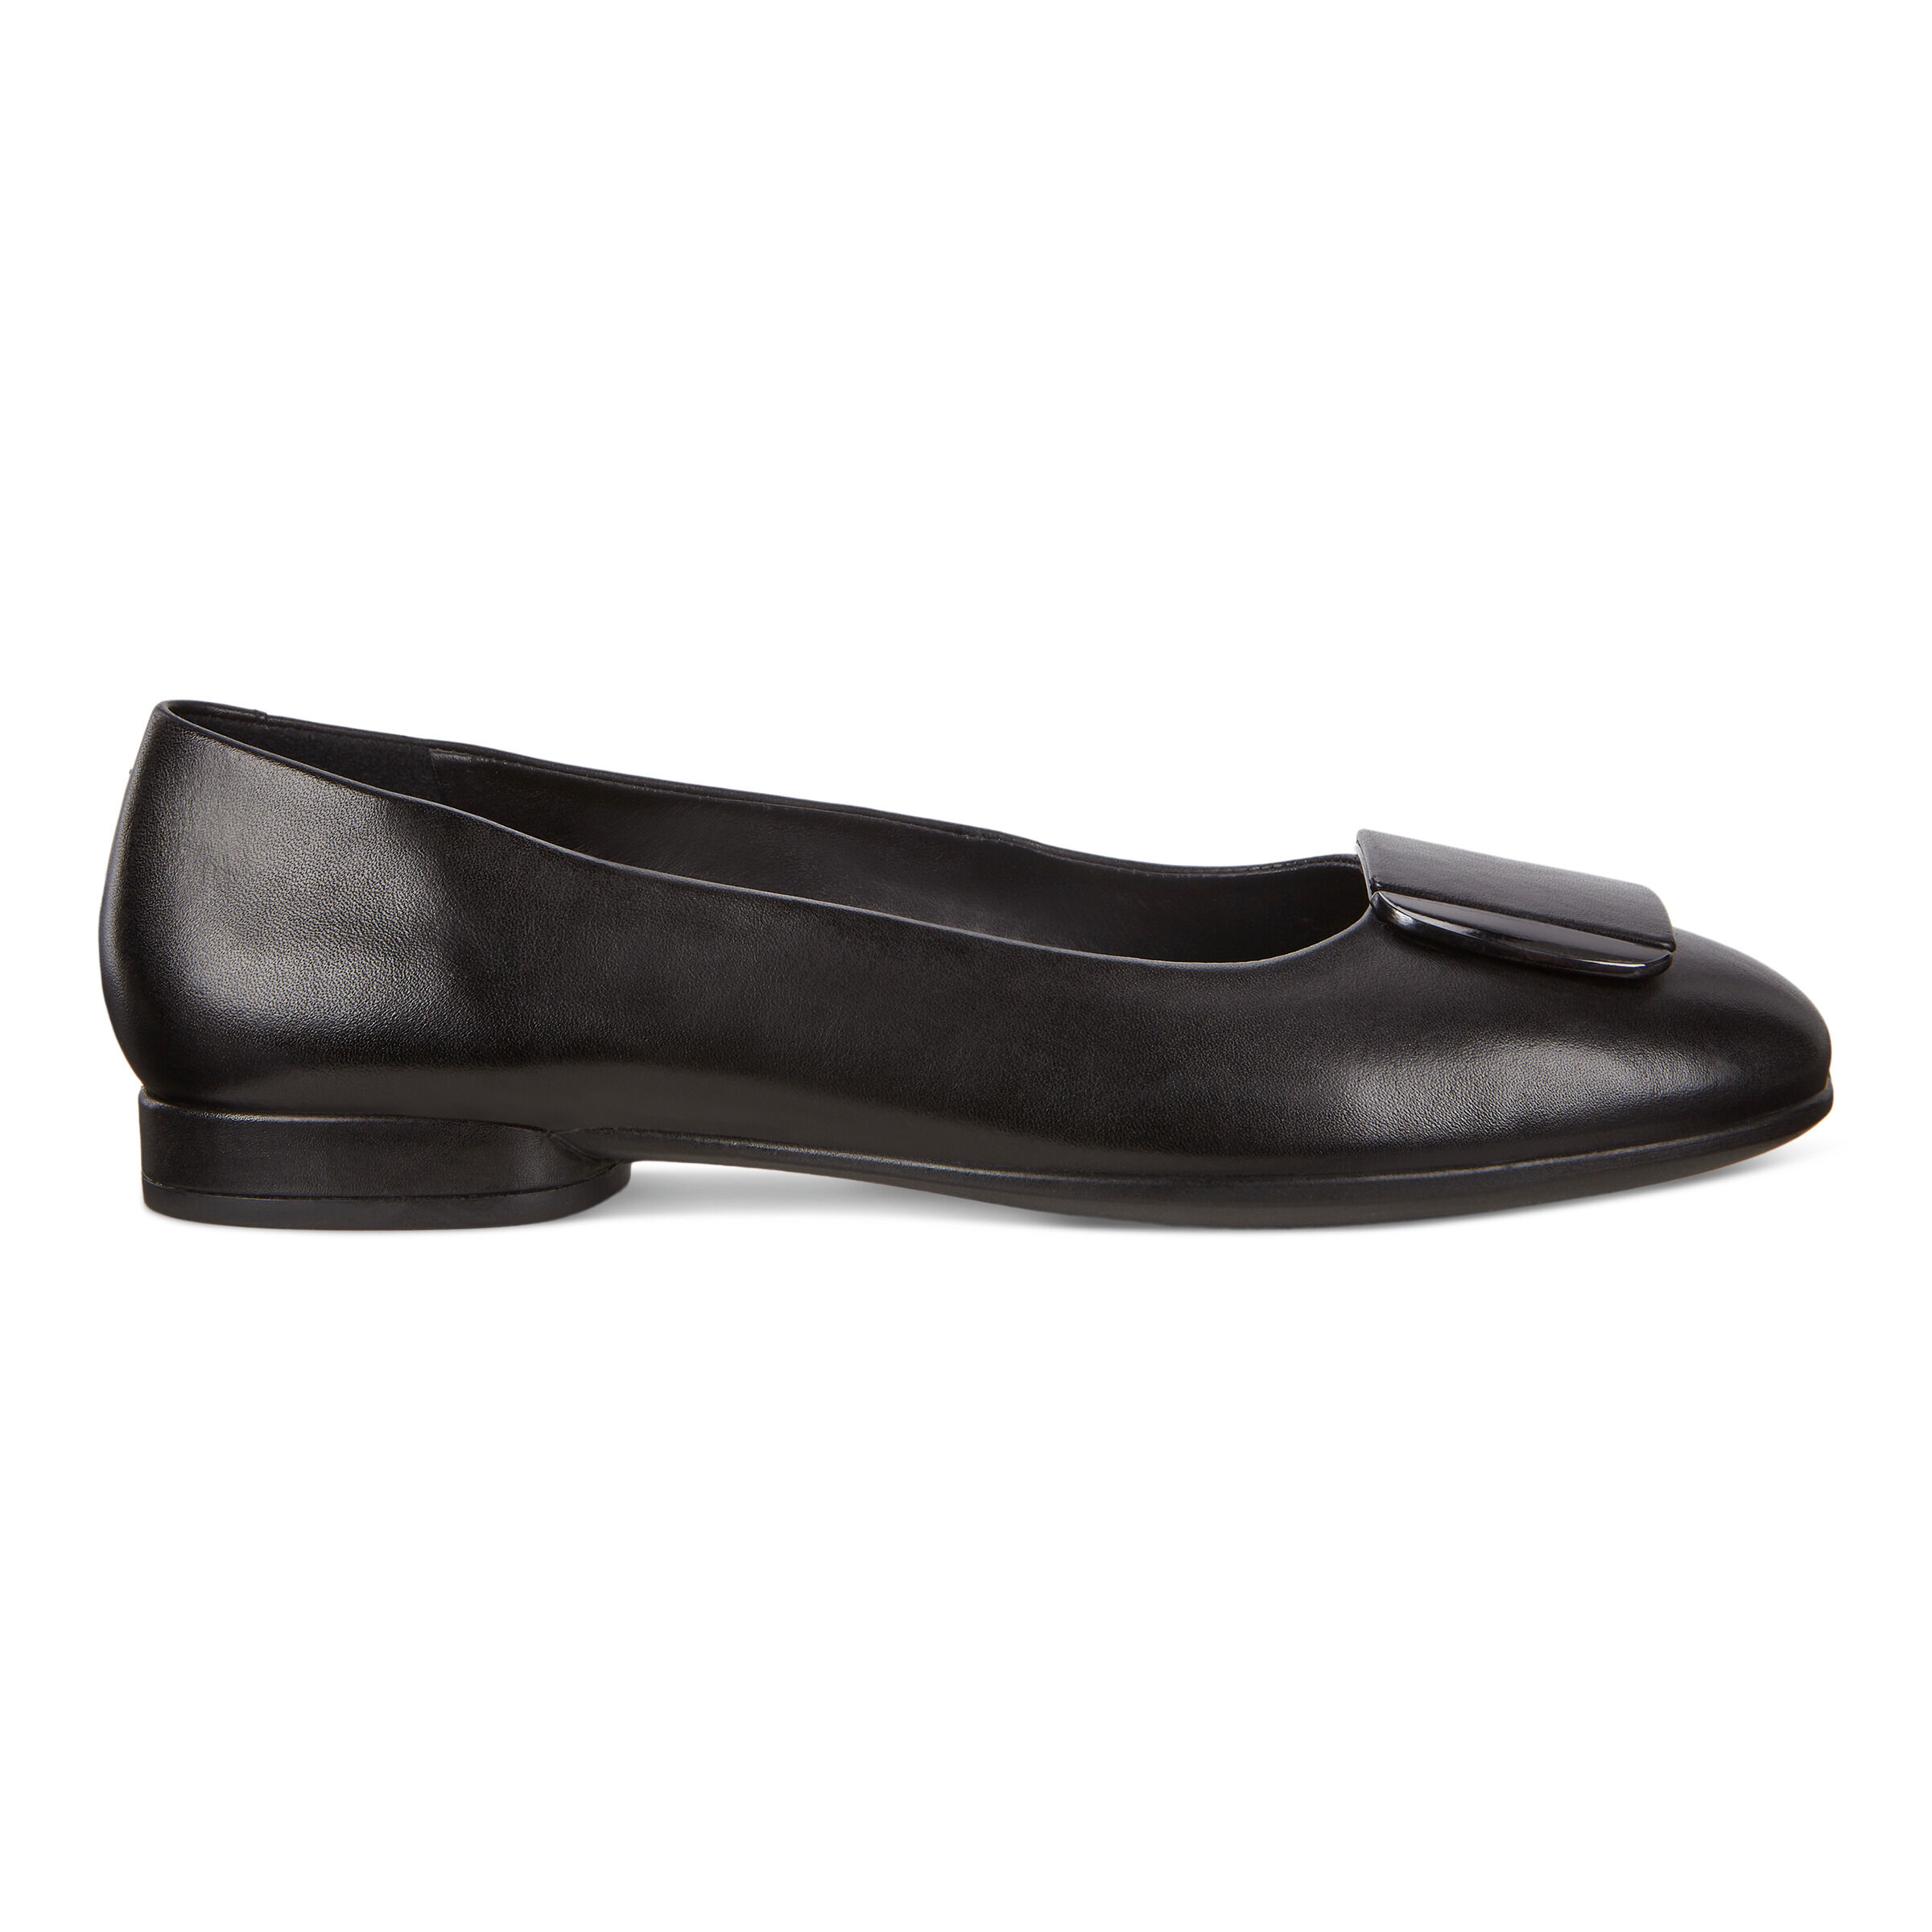 에코 ECCO Anine Womens Ballerina Shoes,black